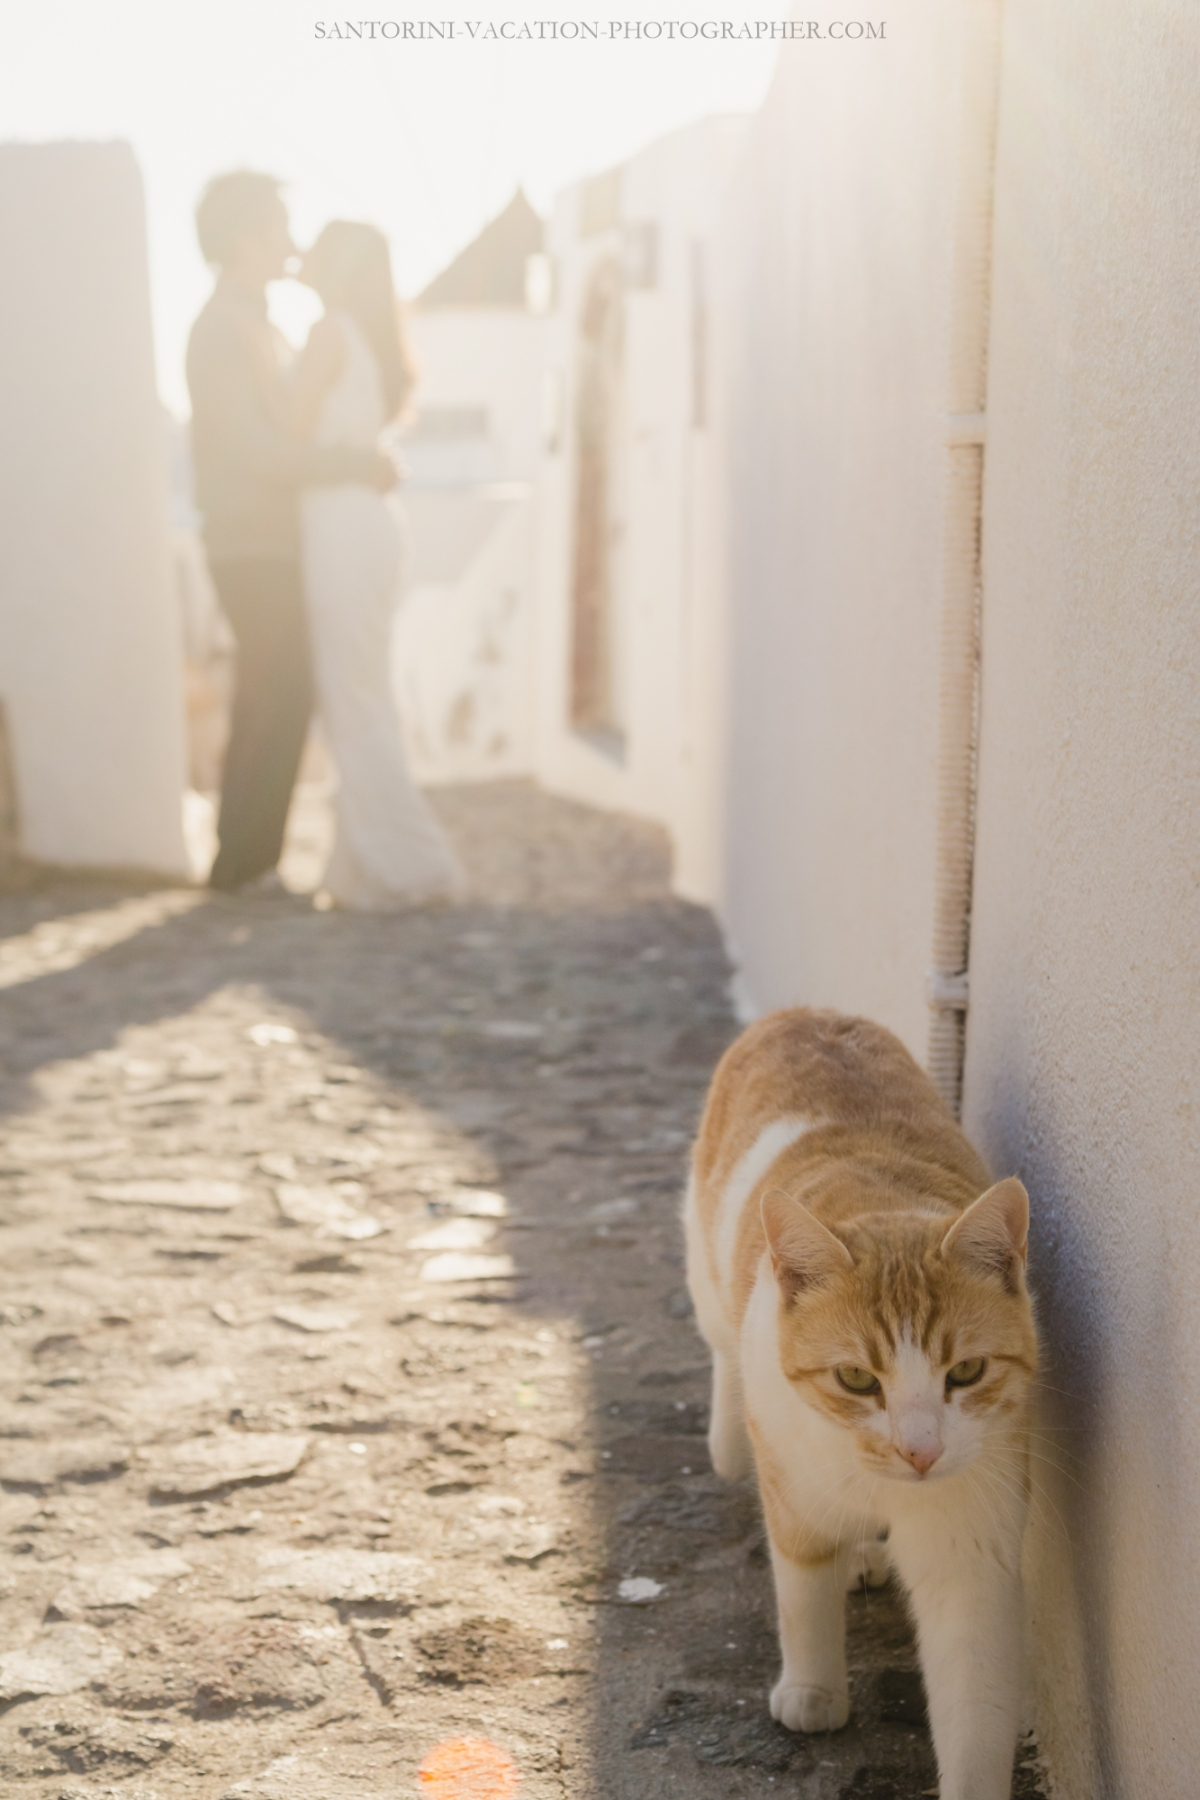 Santorini-photo-session-lifestyle-portrait-romantic-walk-oia-003